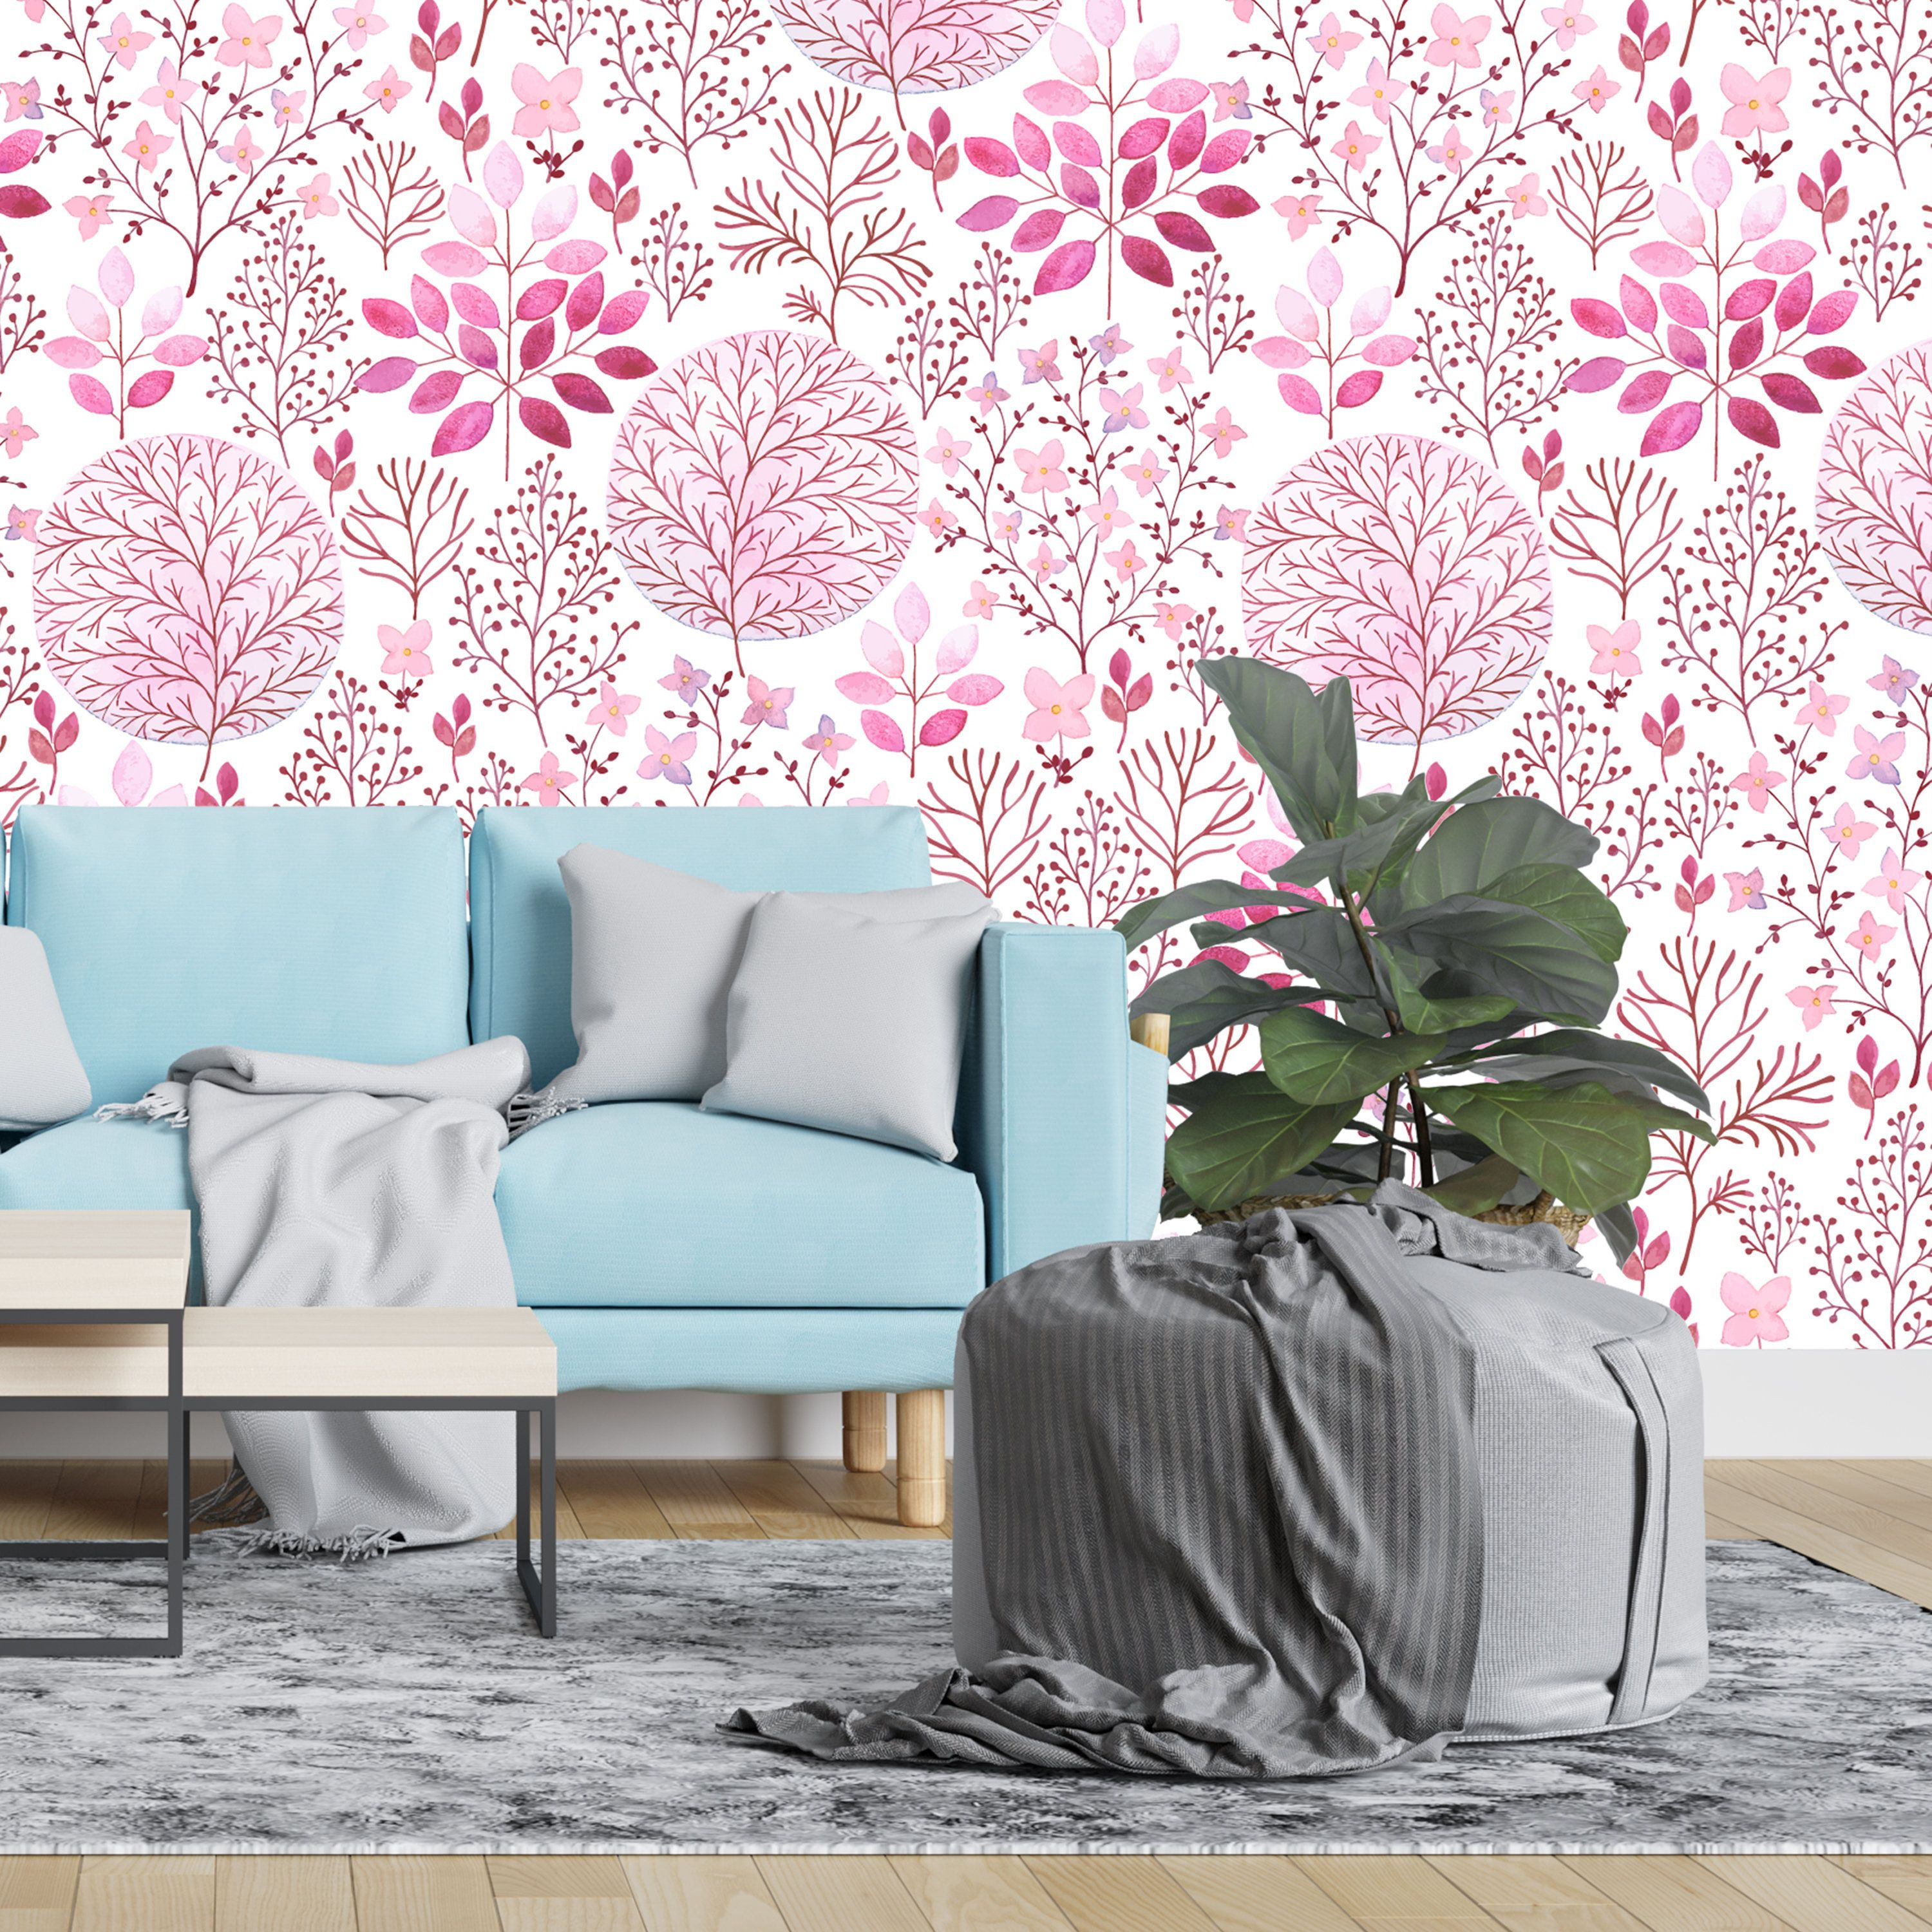 Removable Wallpaper Vintage Pink Watercolor Floral